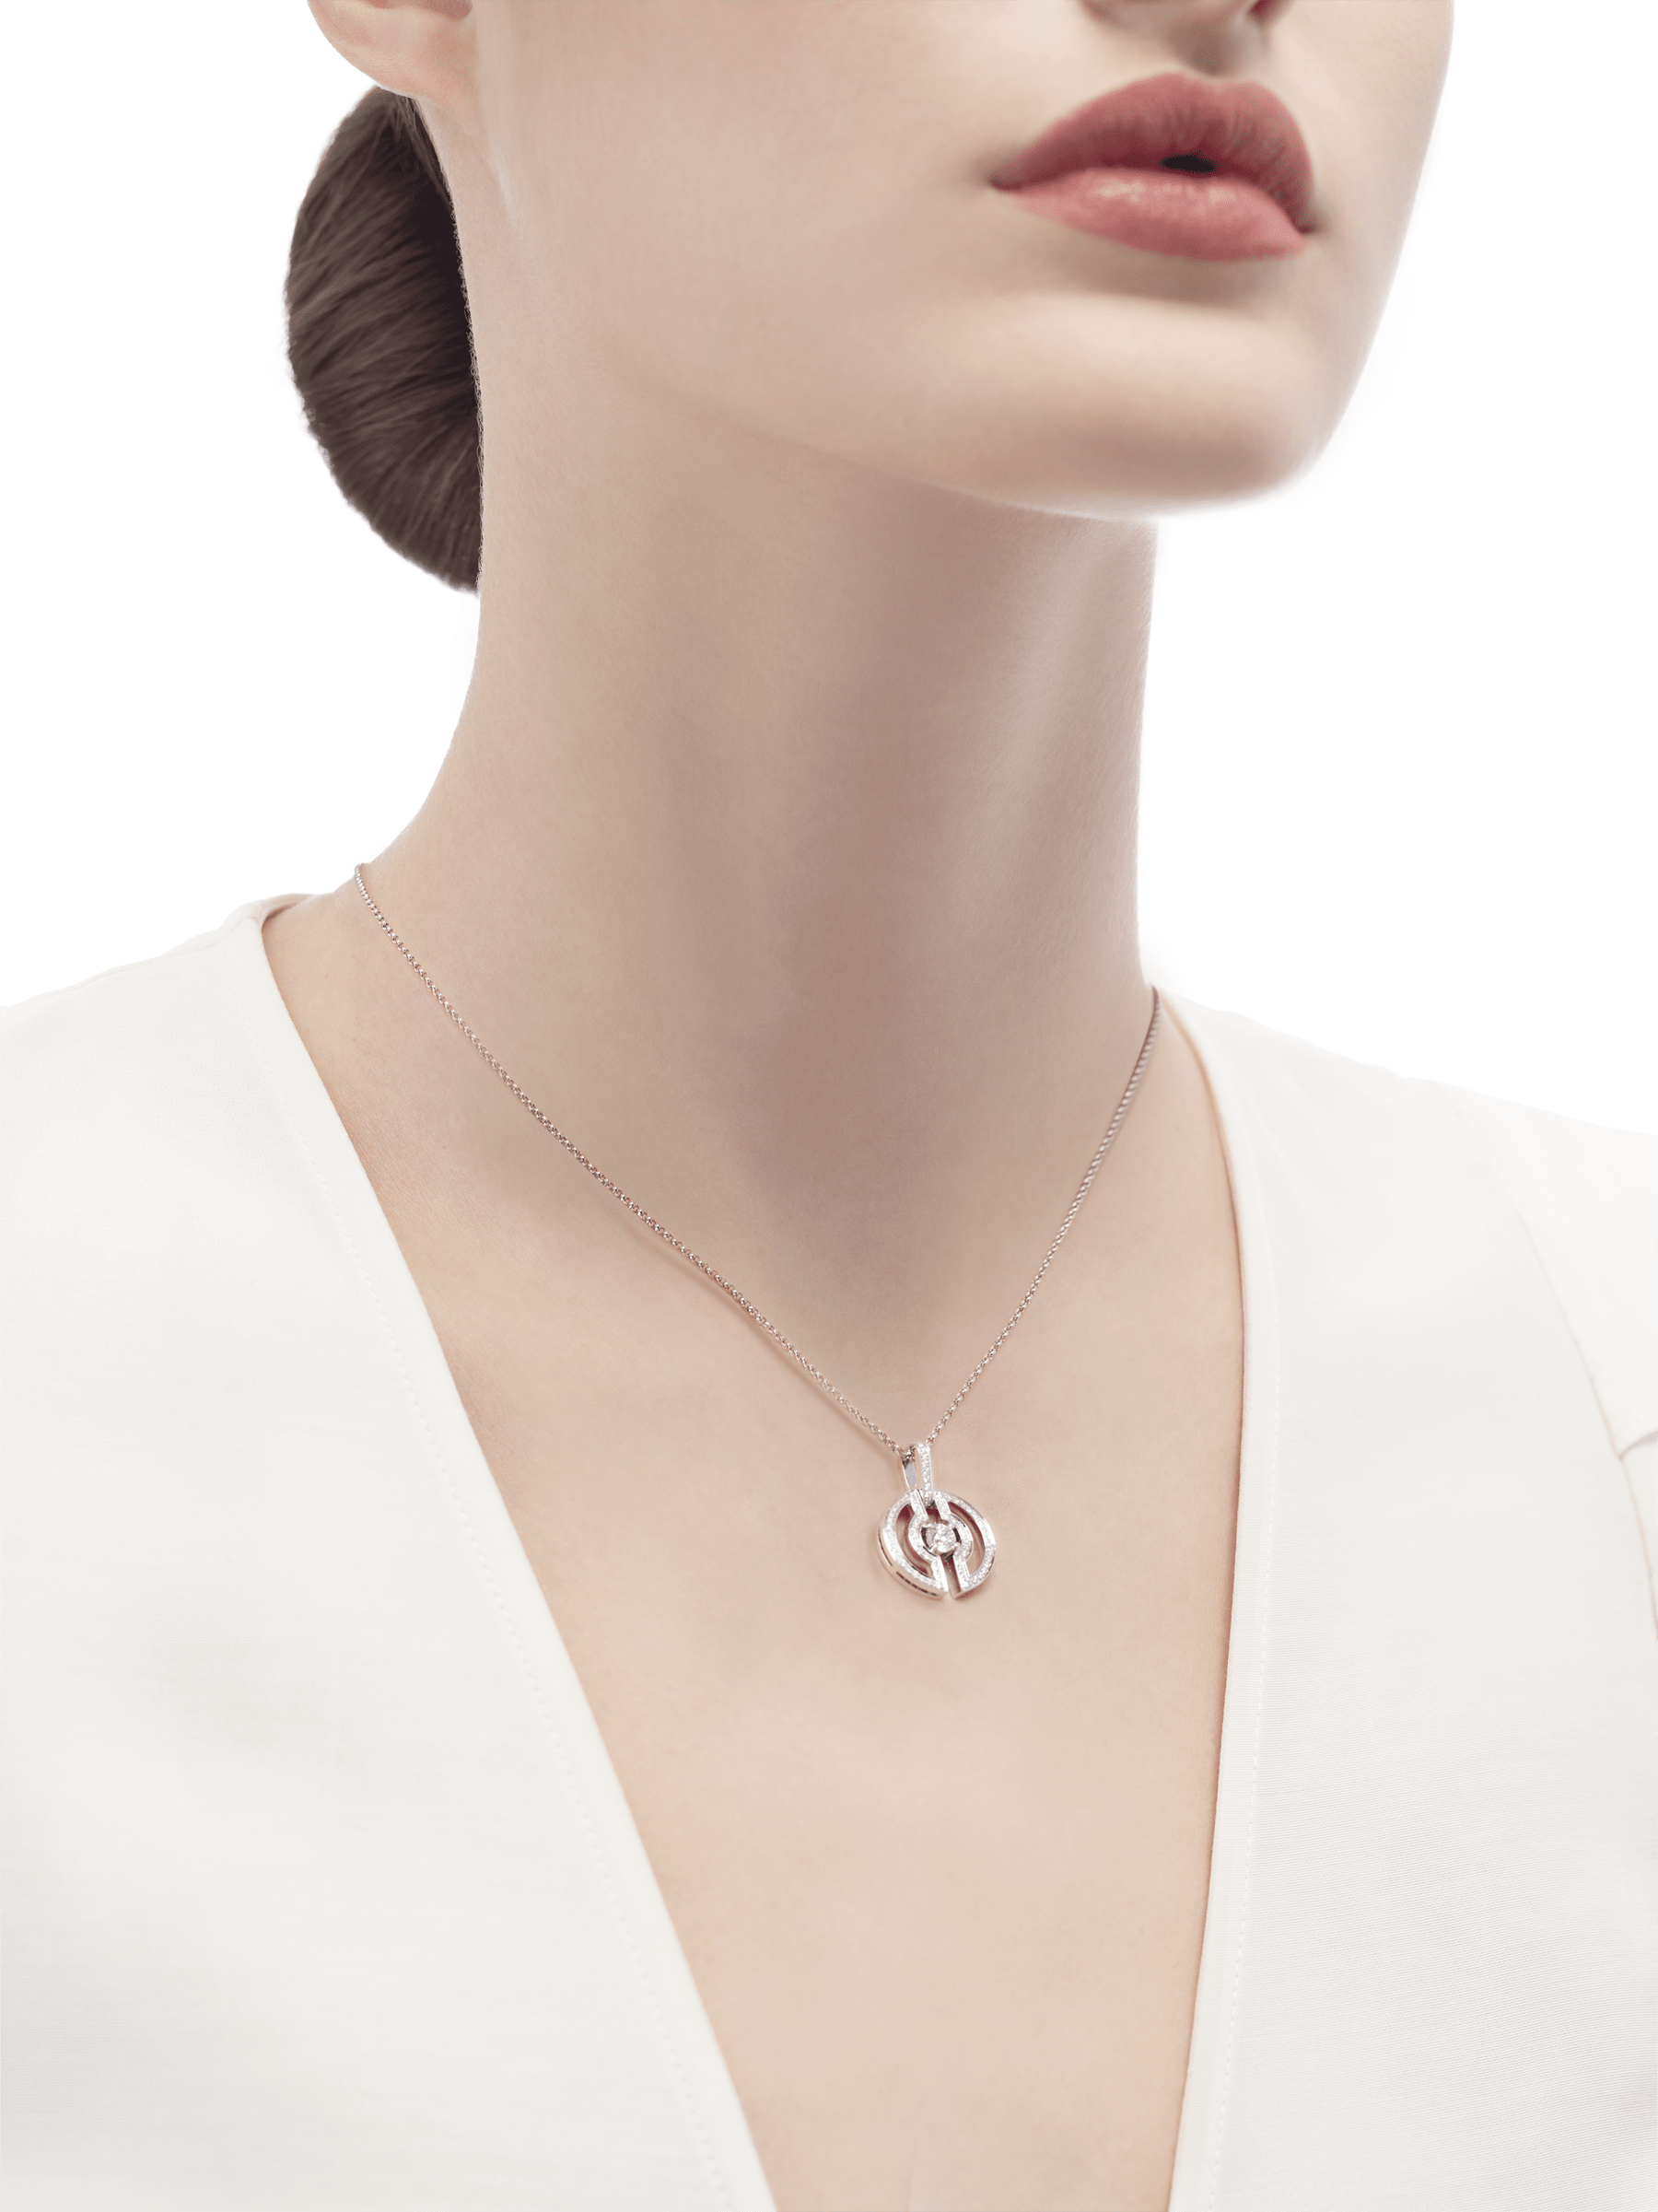 Parentesi necklace with 18 kt white gold chain and pendant, set with a central diamond and pavé diamonds on the edges. 354313 image 5